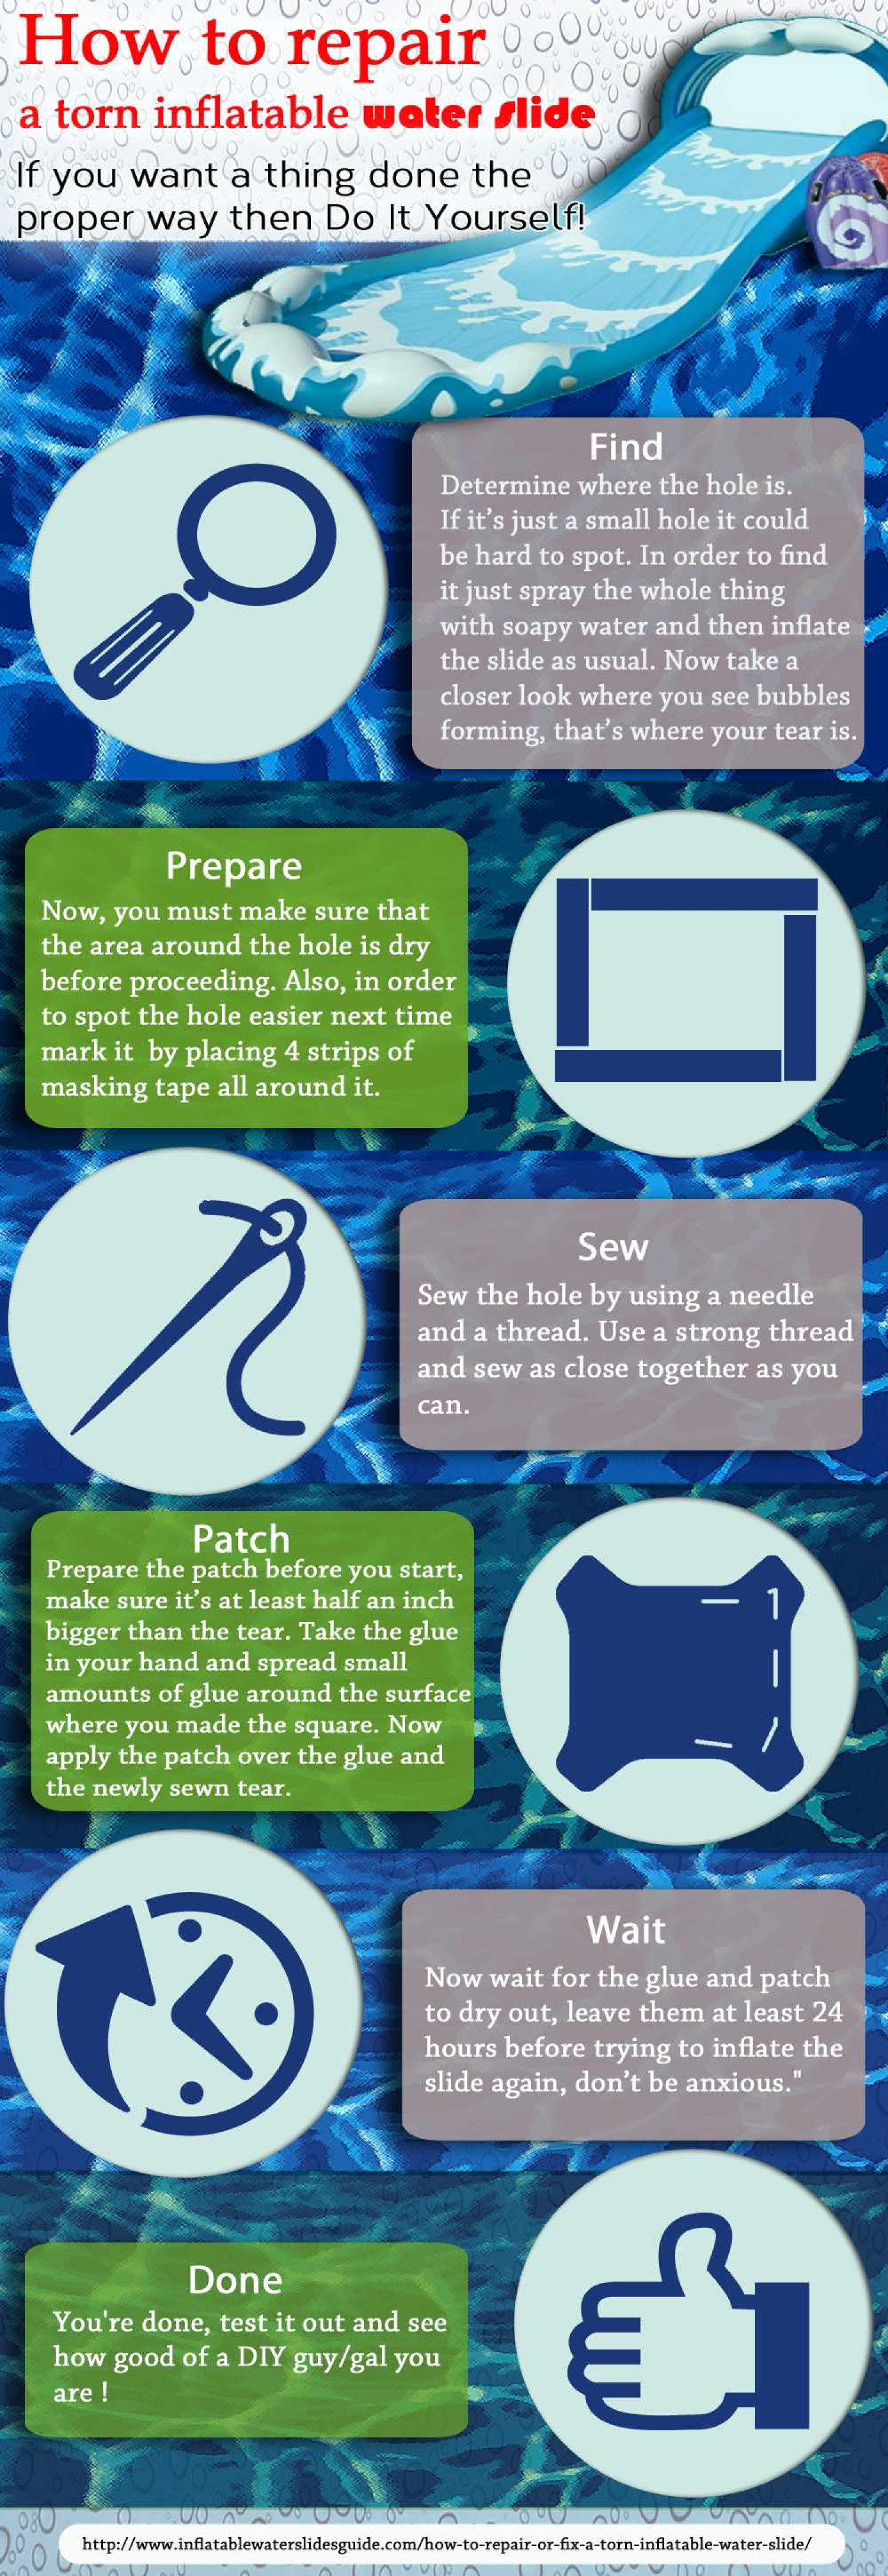 How to Repair A Torn Inflatable Water Slide Infographic